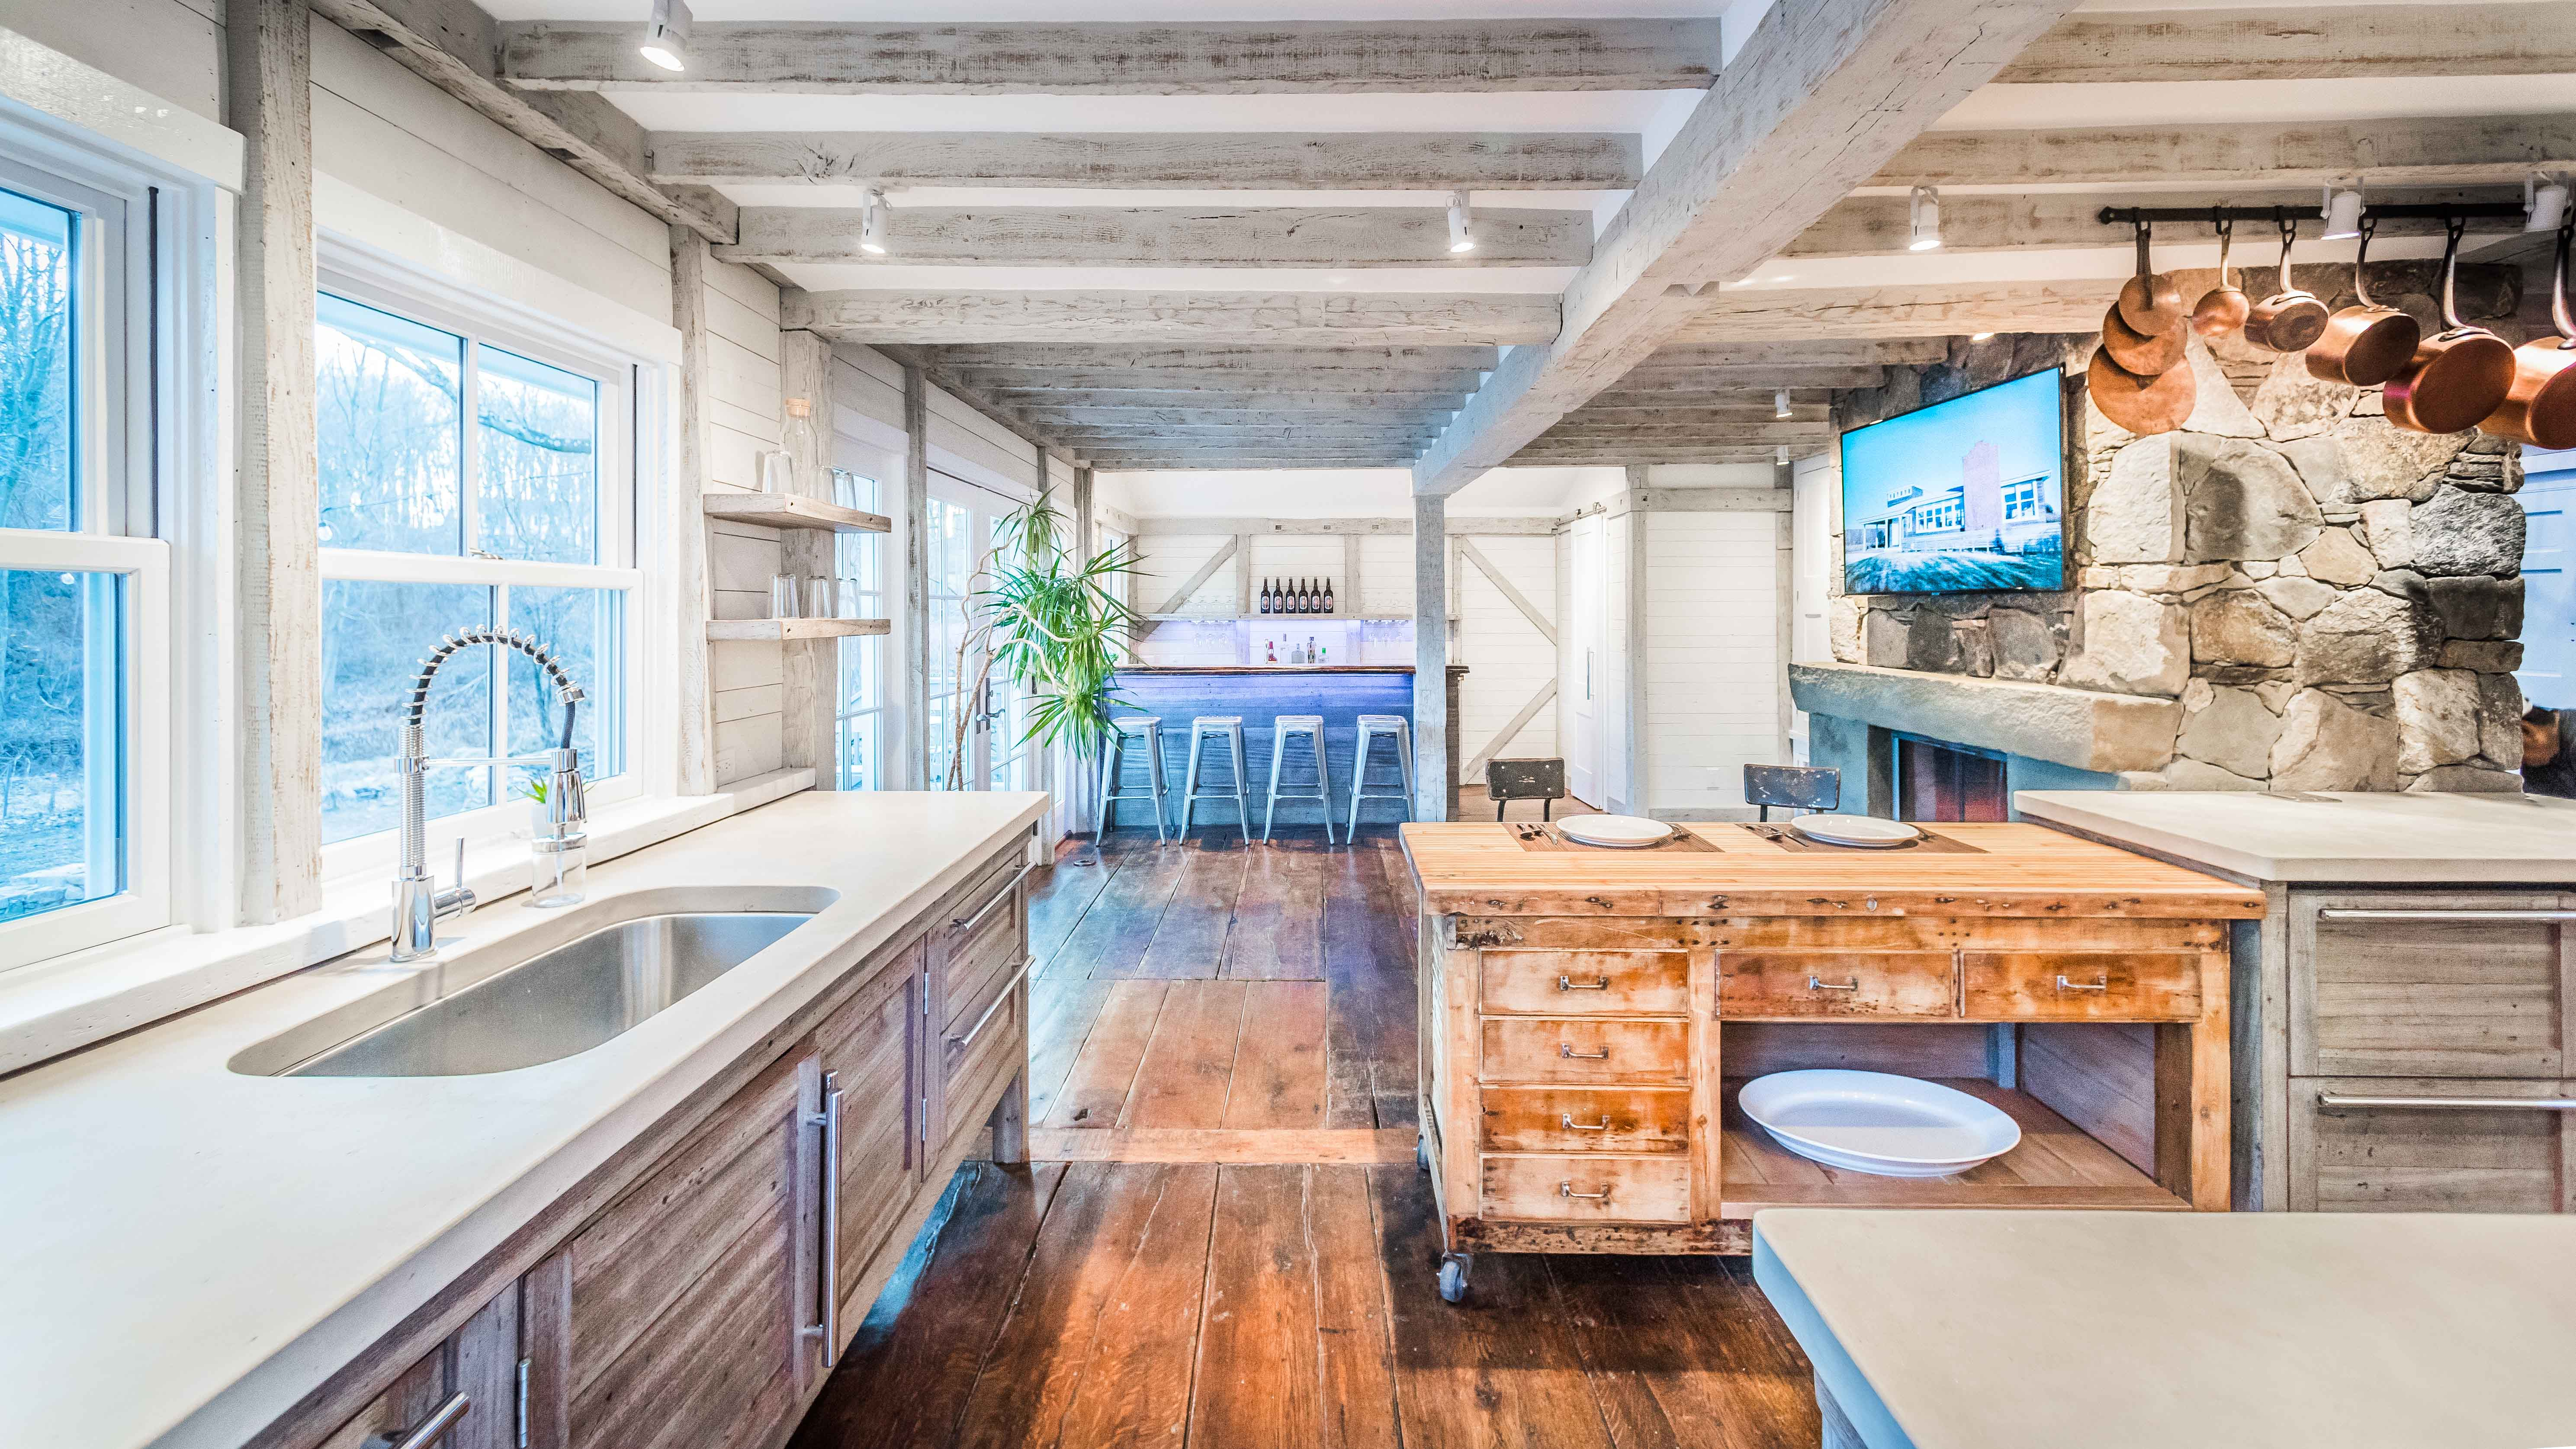 The All New 1812 Modern Farmhouse Deconstructed Kitchen